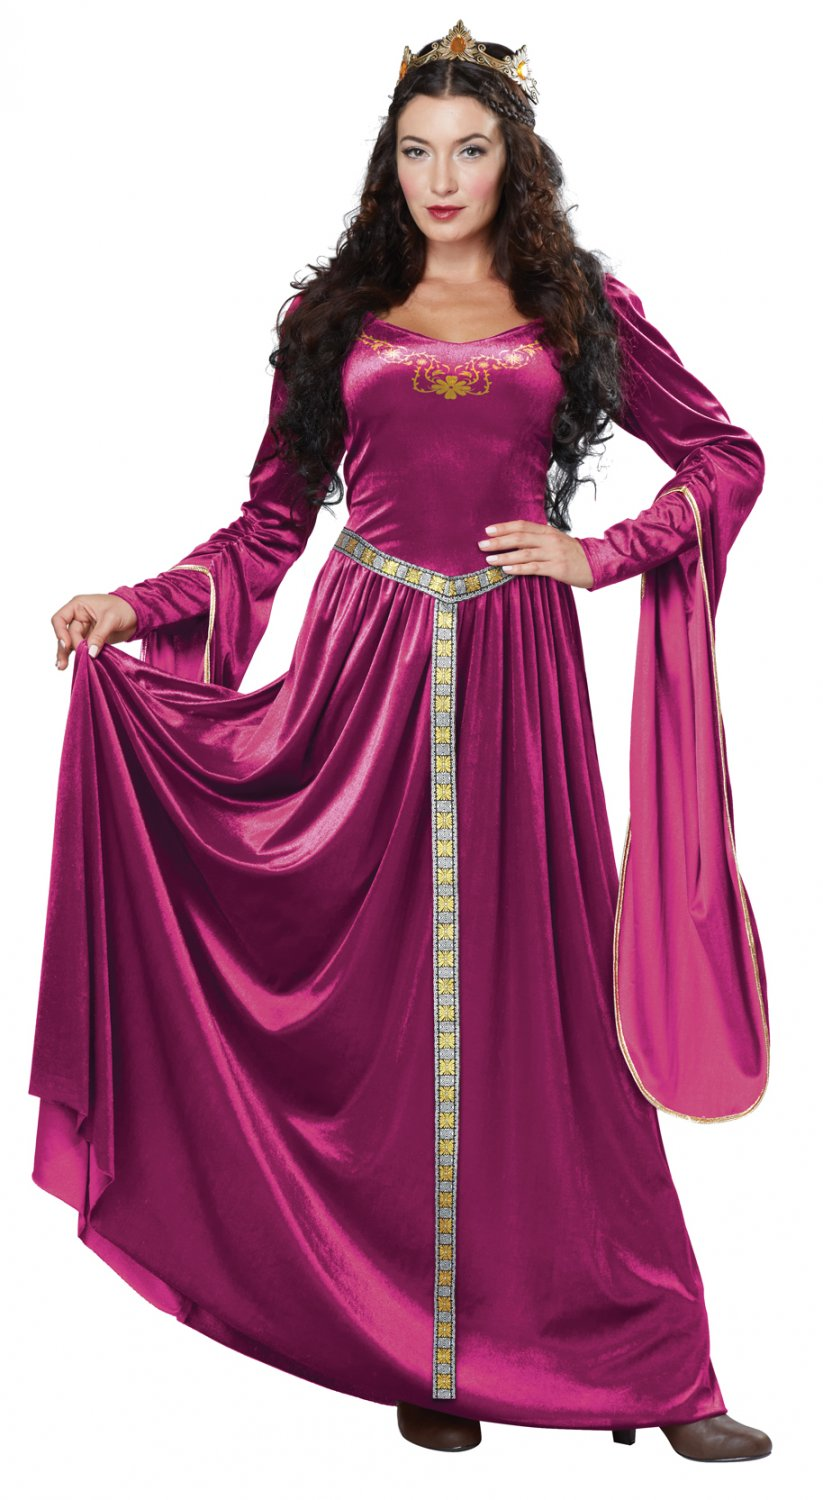 Lady Guinevere Medieval Times Adult Costume Size: X-Large #01379